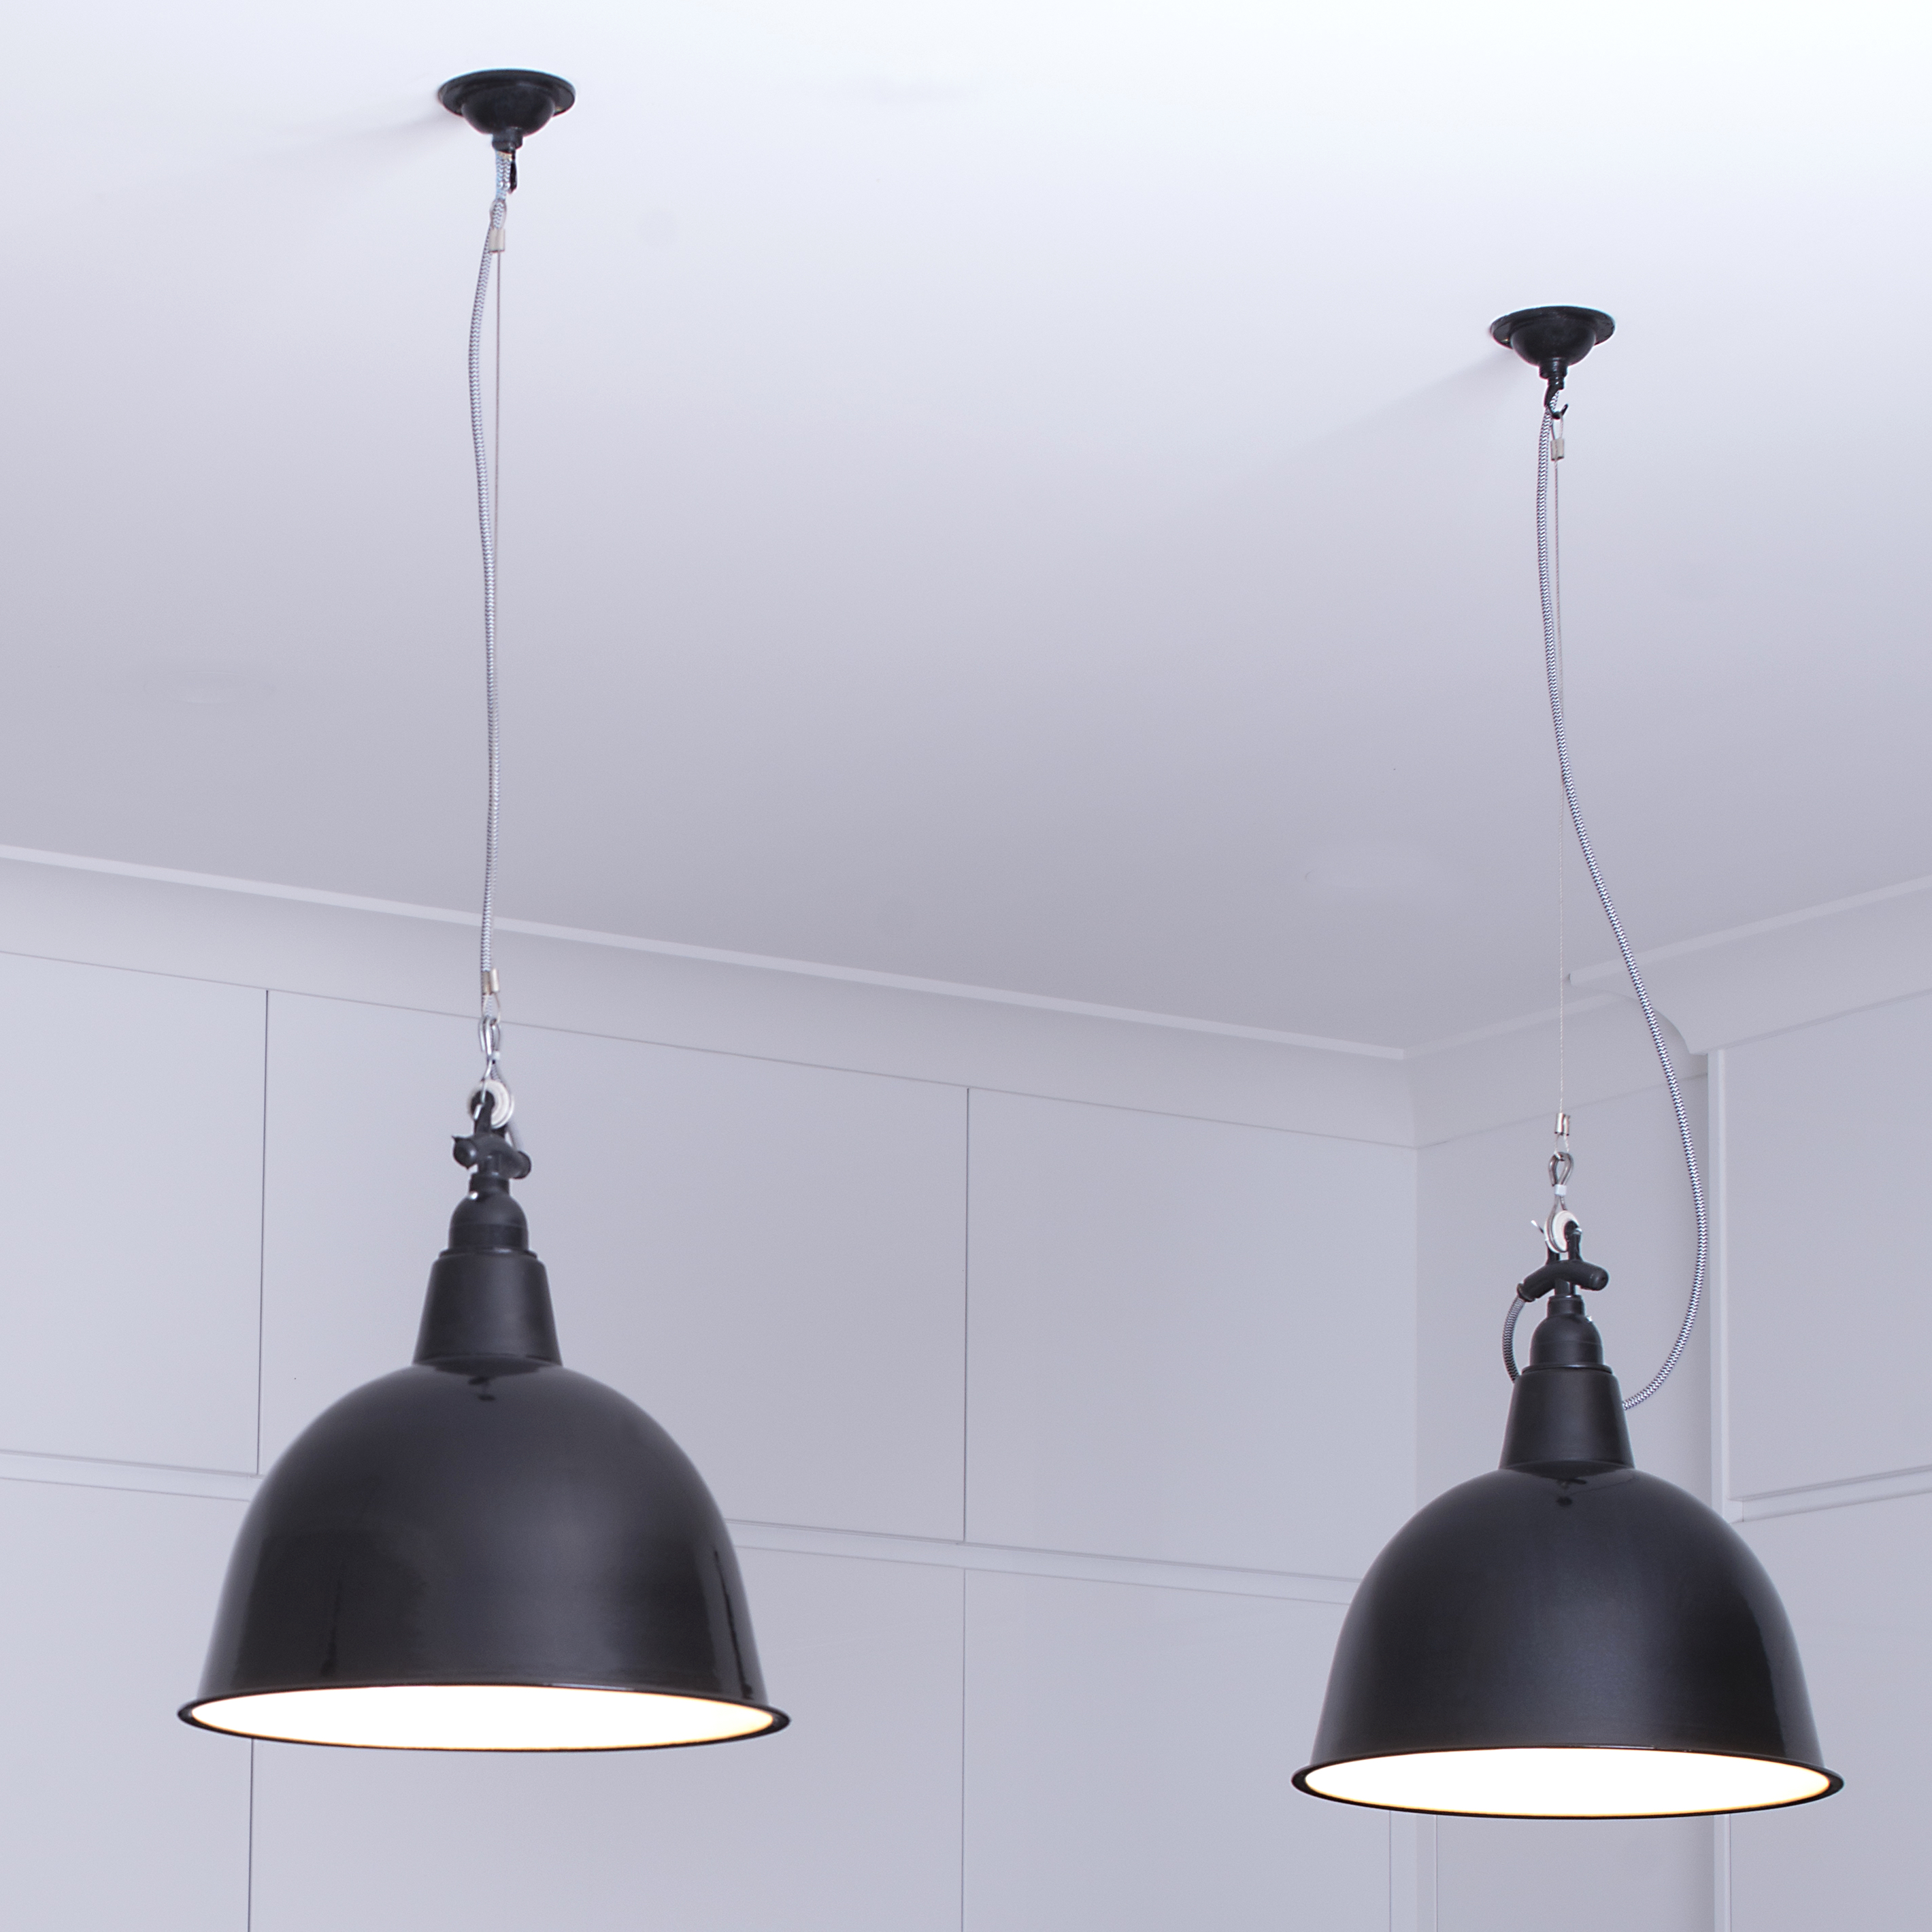 Hanging enamel lightshades, vintage industrial style lighting.